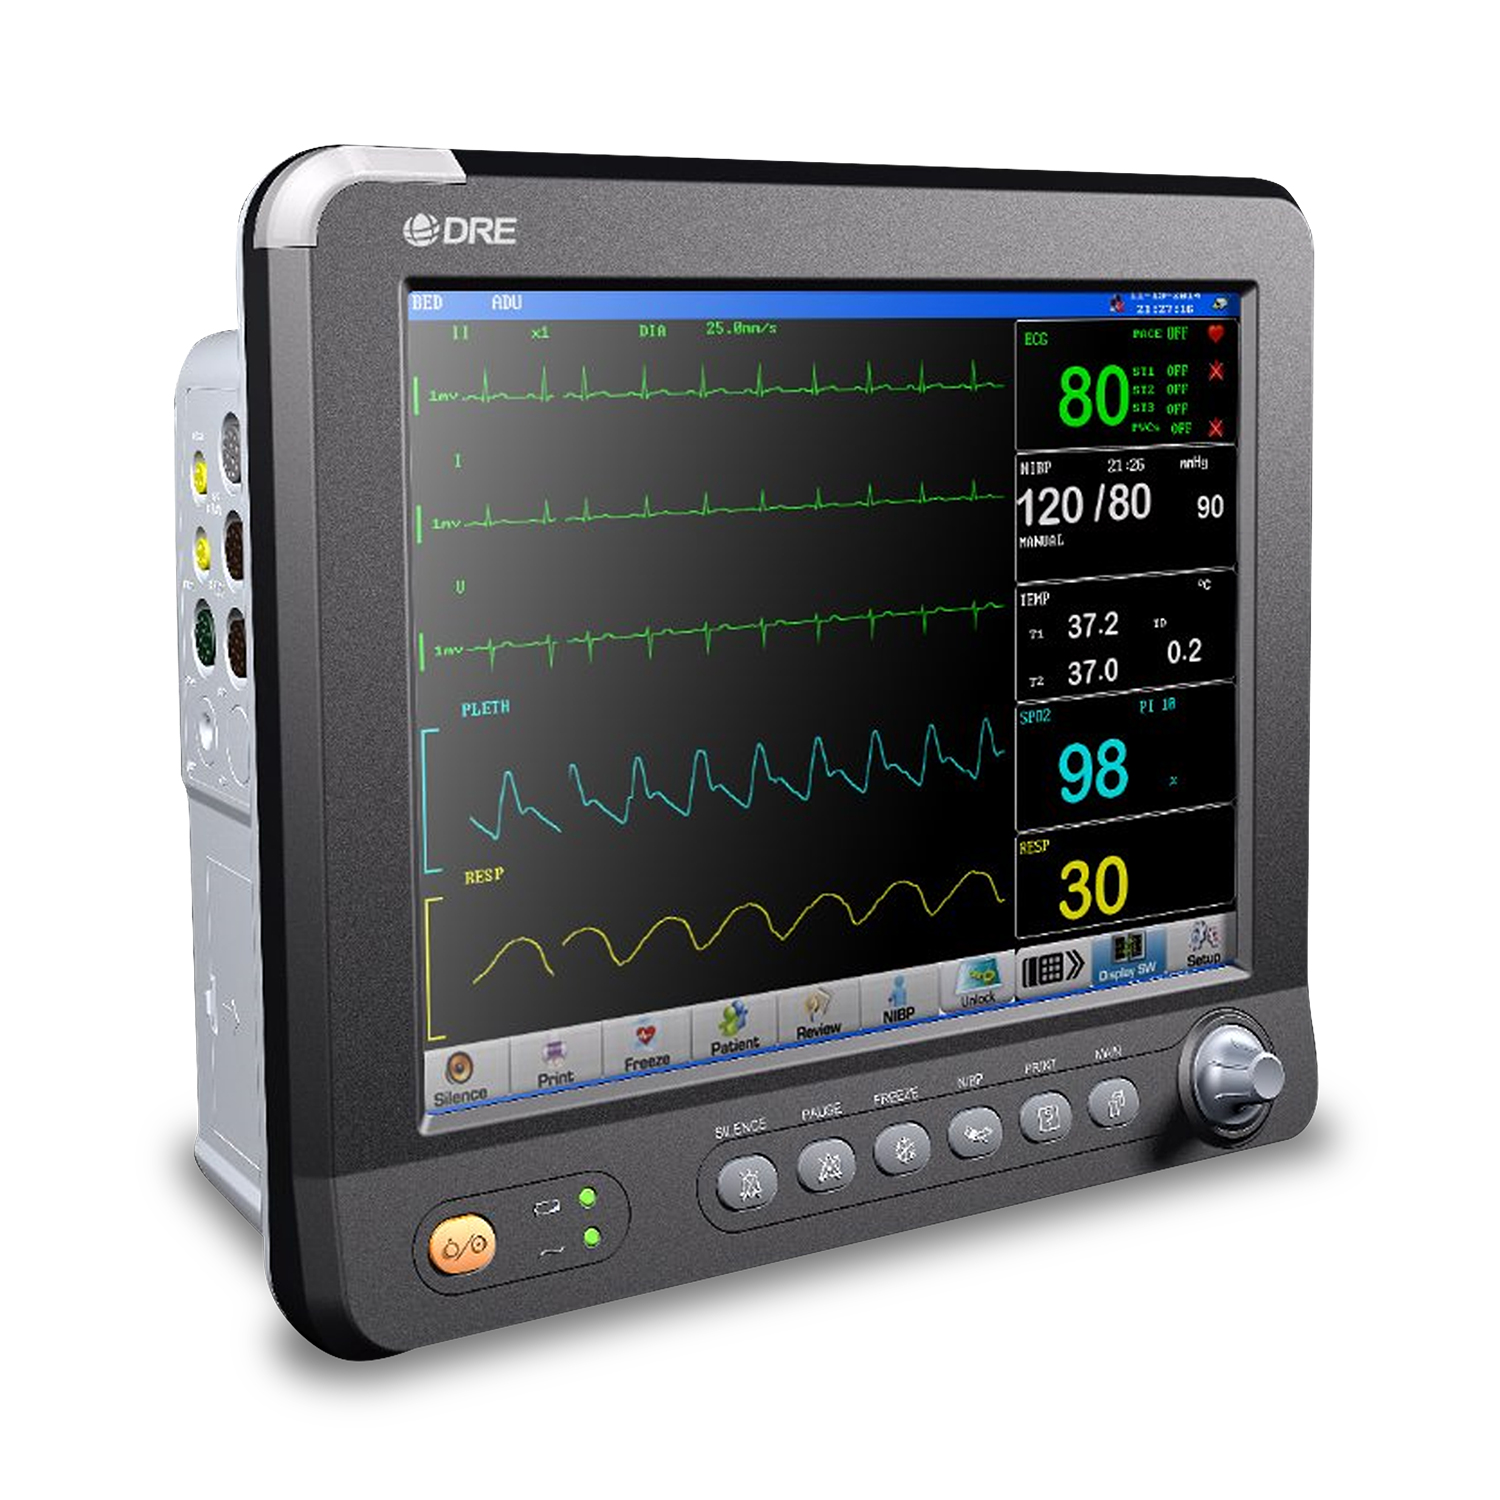 DRE Waveline ECO Patient Monitor